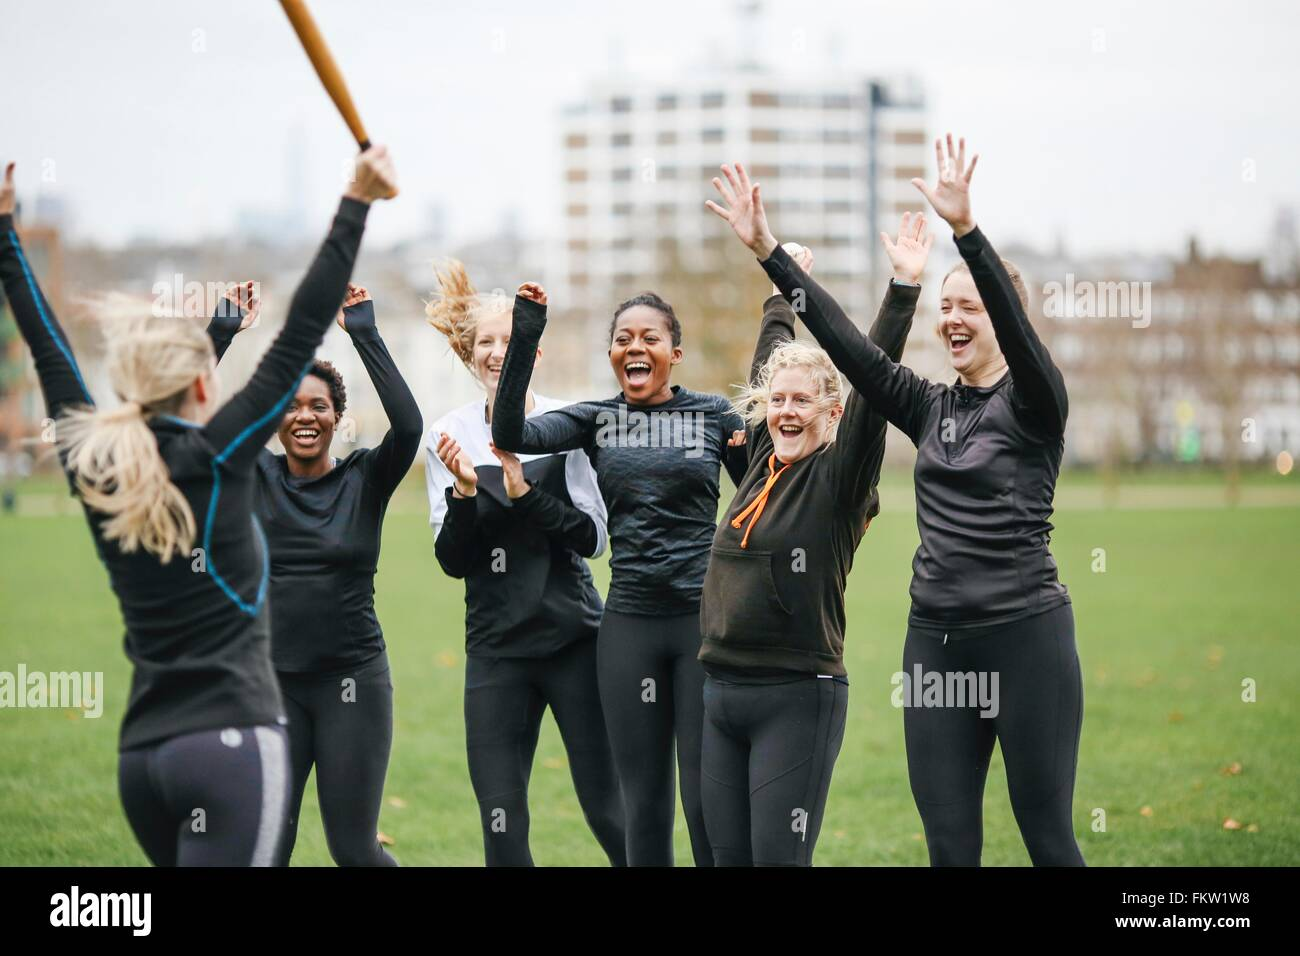 Female rounders team celebrating at rounders match - Stock Image